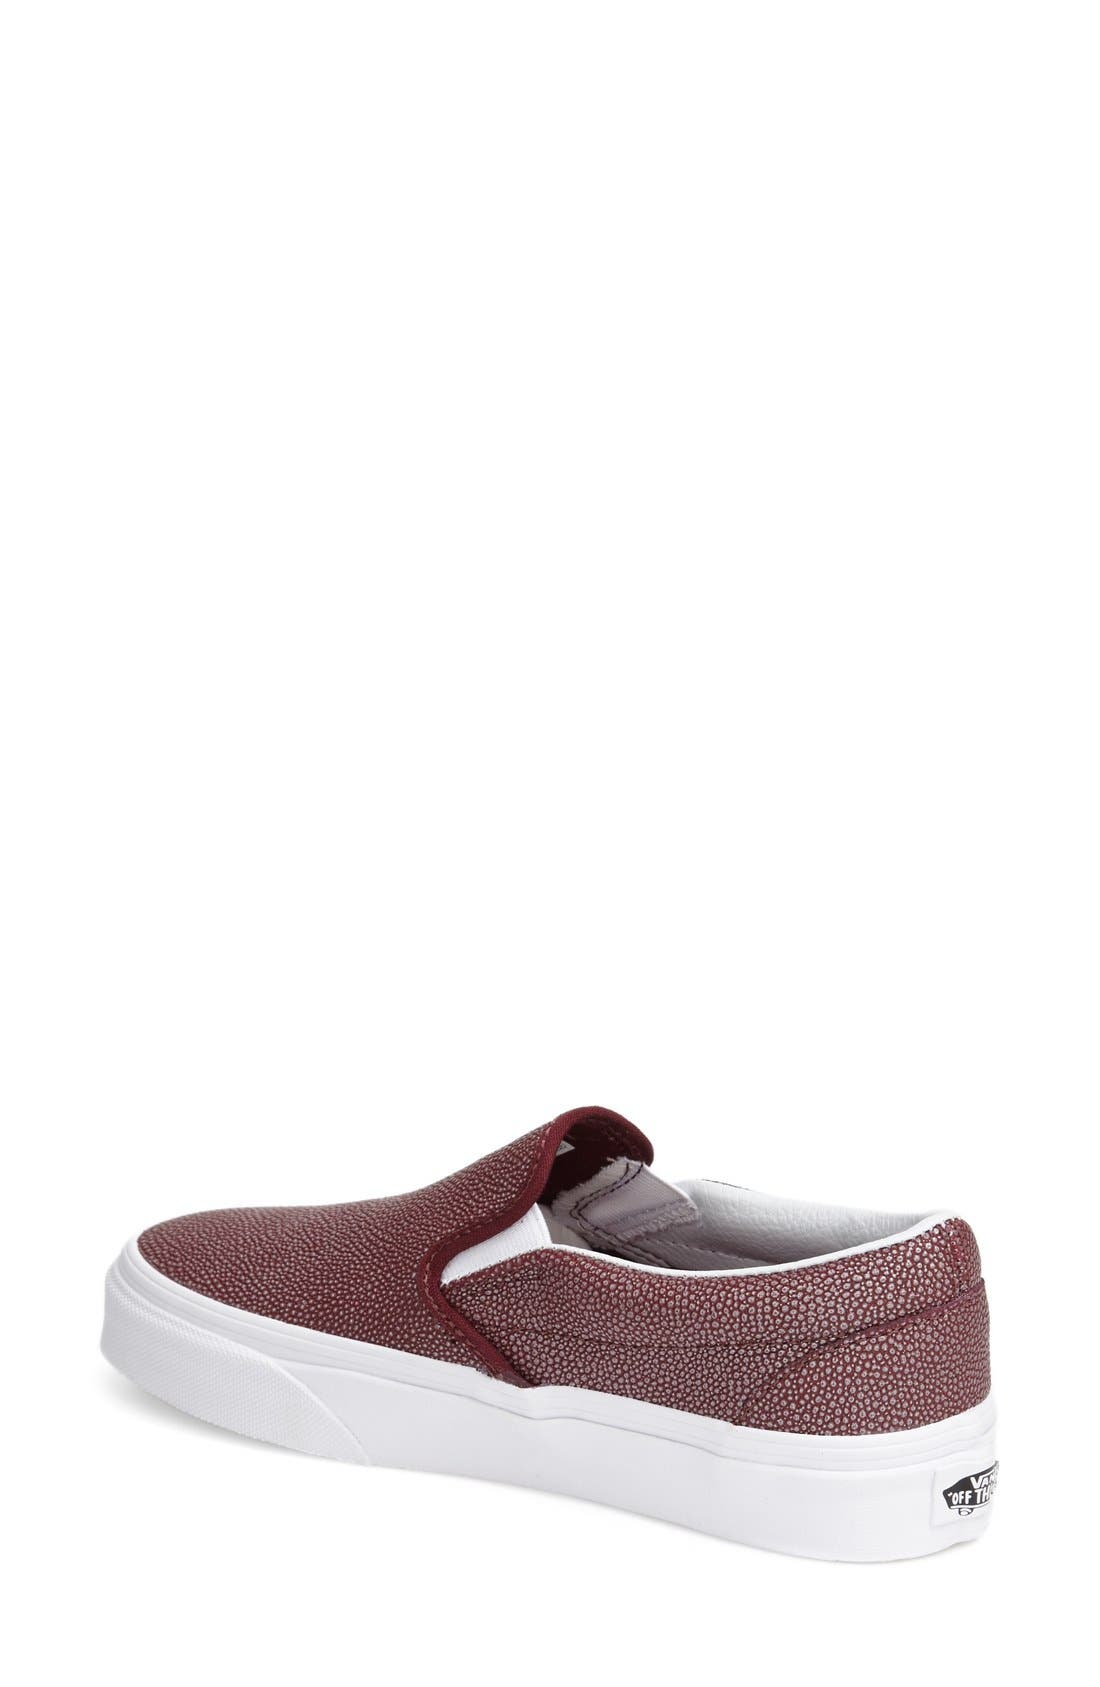 Classic Slip-On Sneaker,                             Alternate thumbnail 161, color,